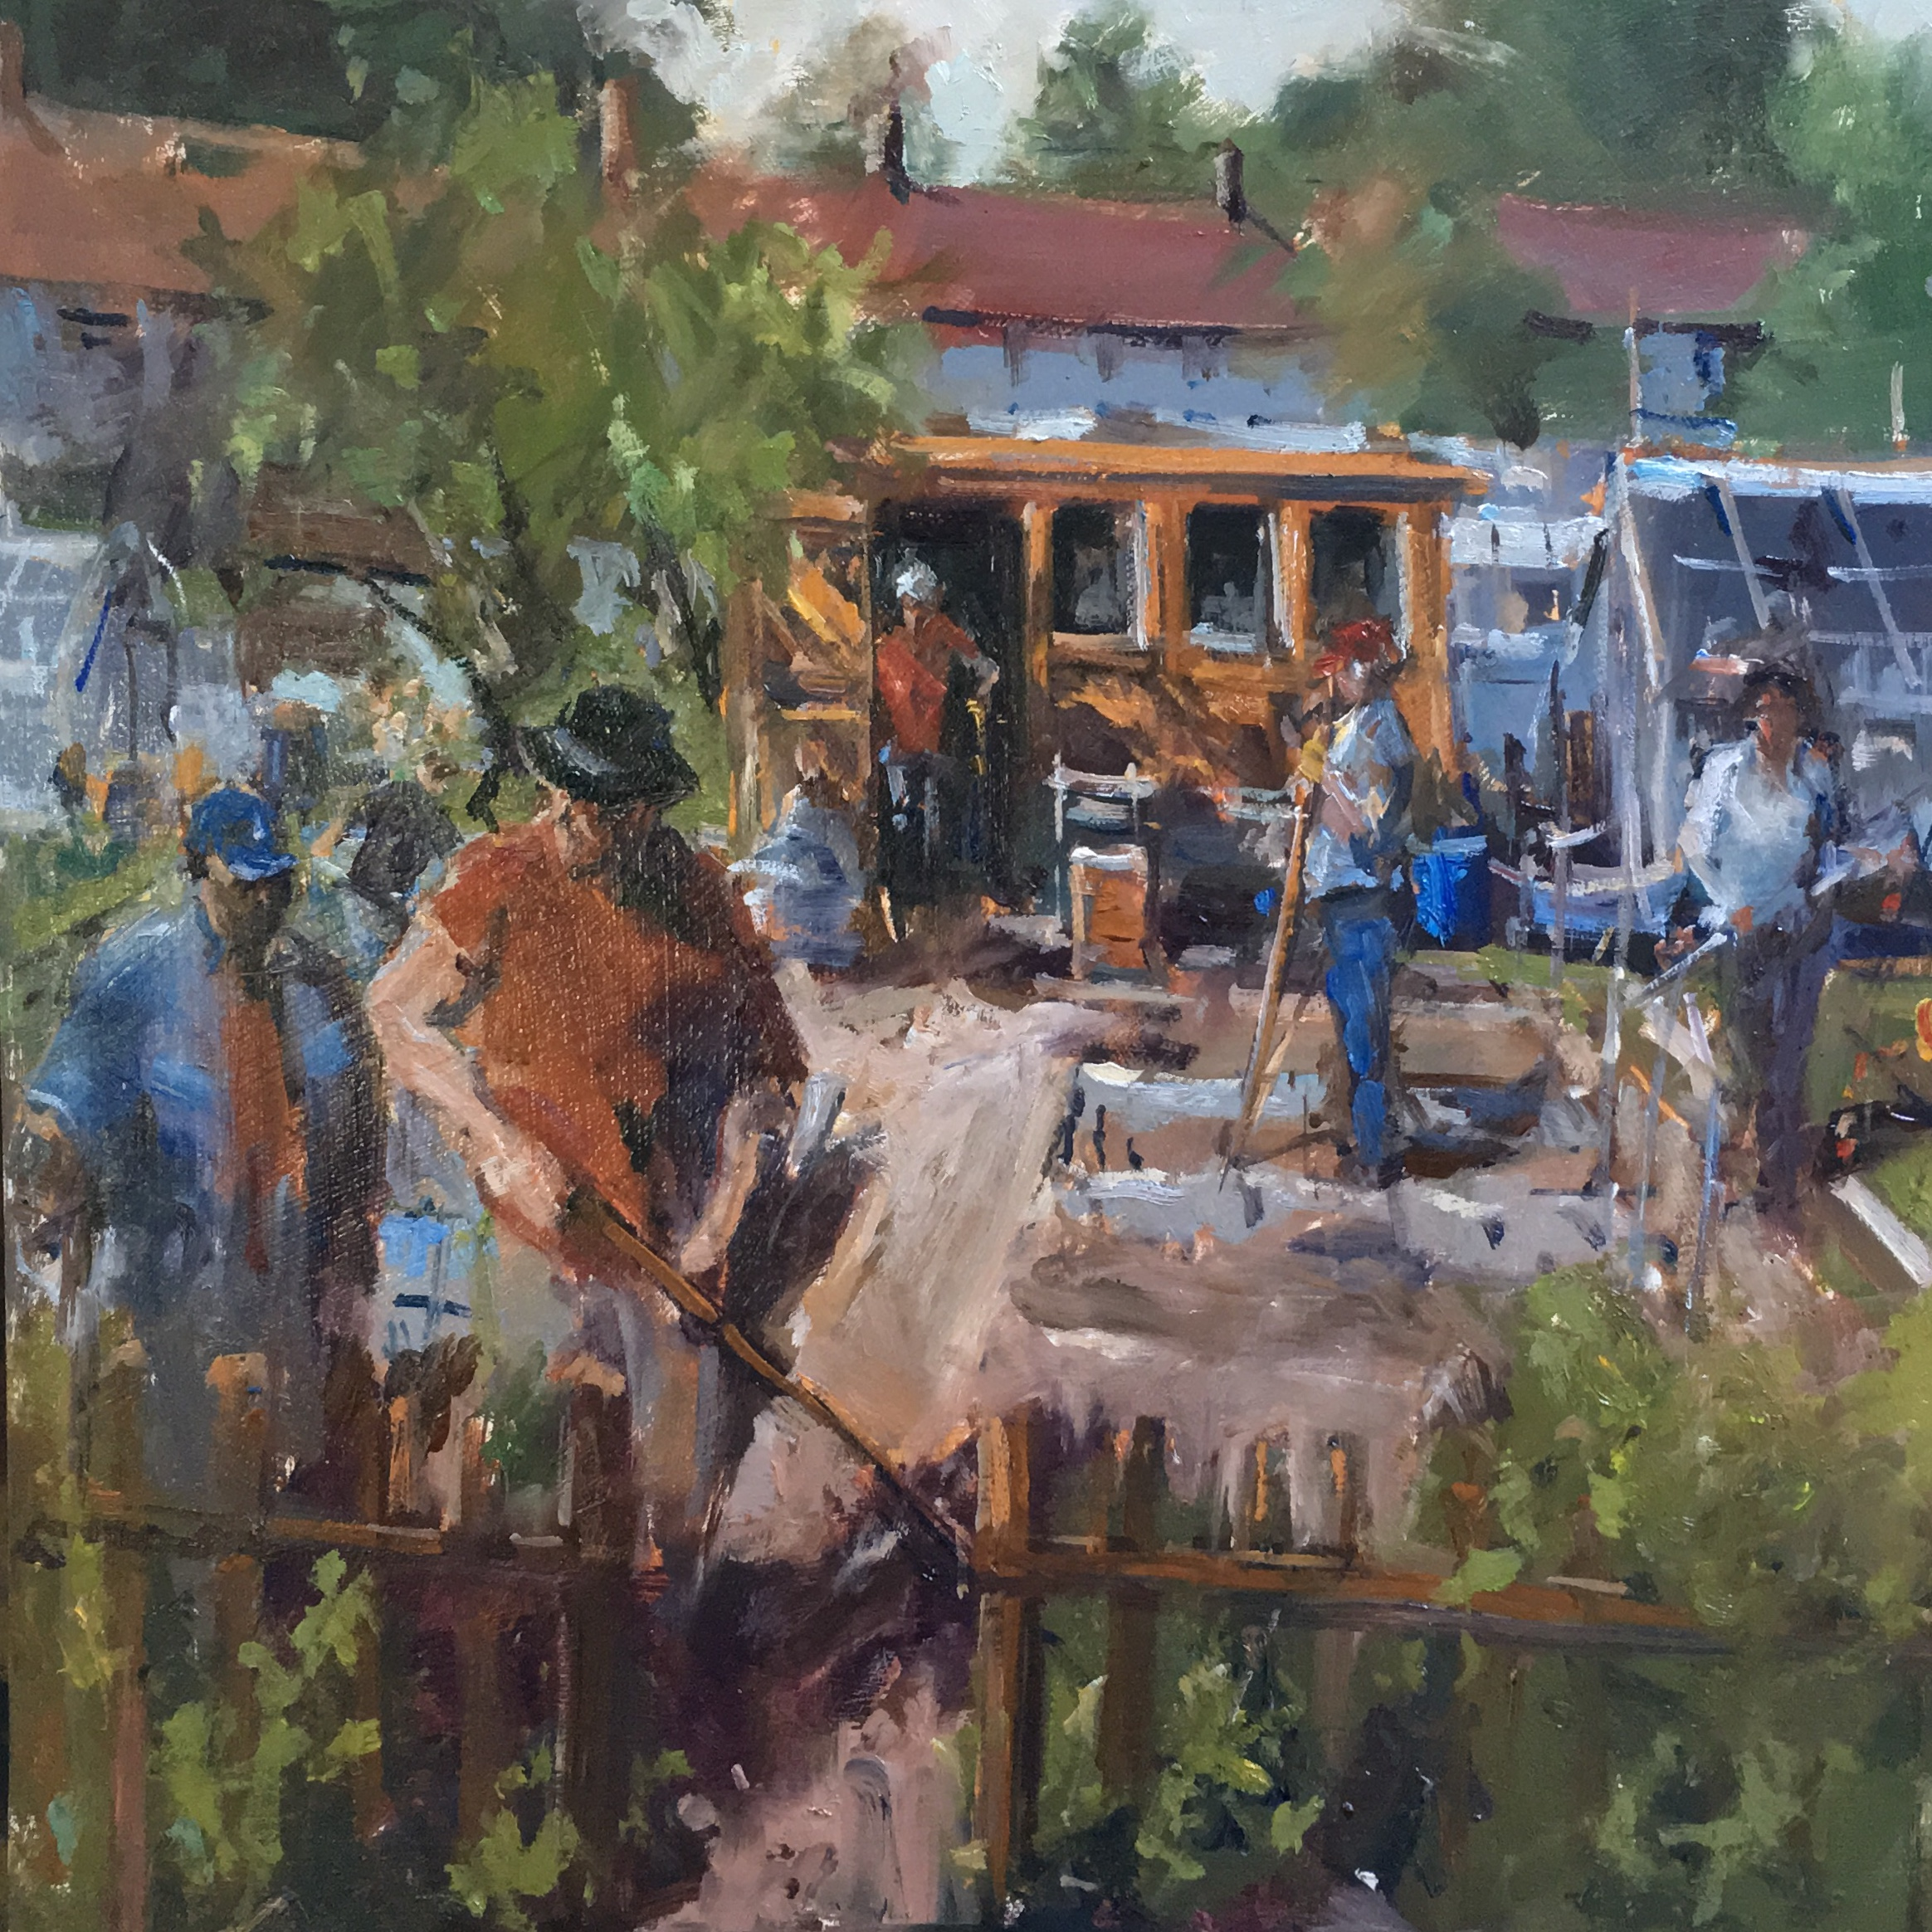 Community spirit the allotments 16x16 inches Oil